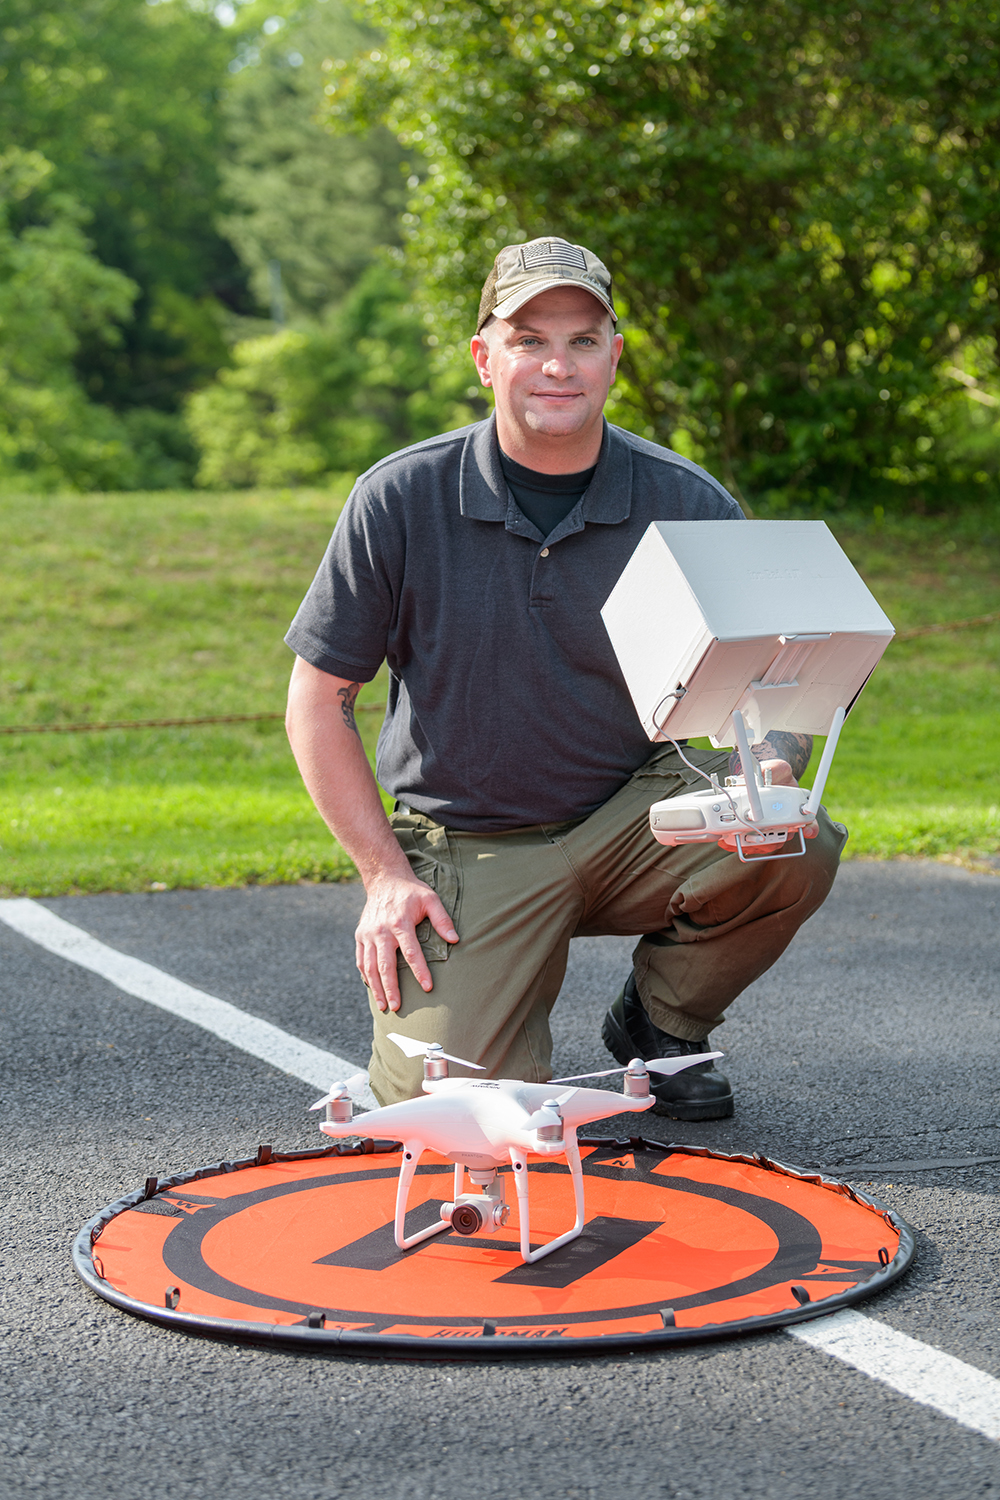 Tavis Miller kneeling over a target with a drone in the center